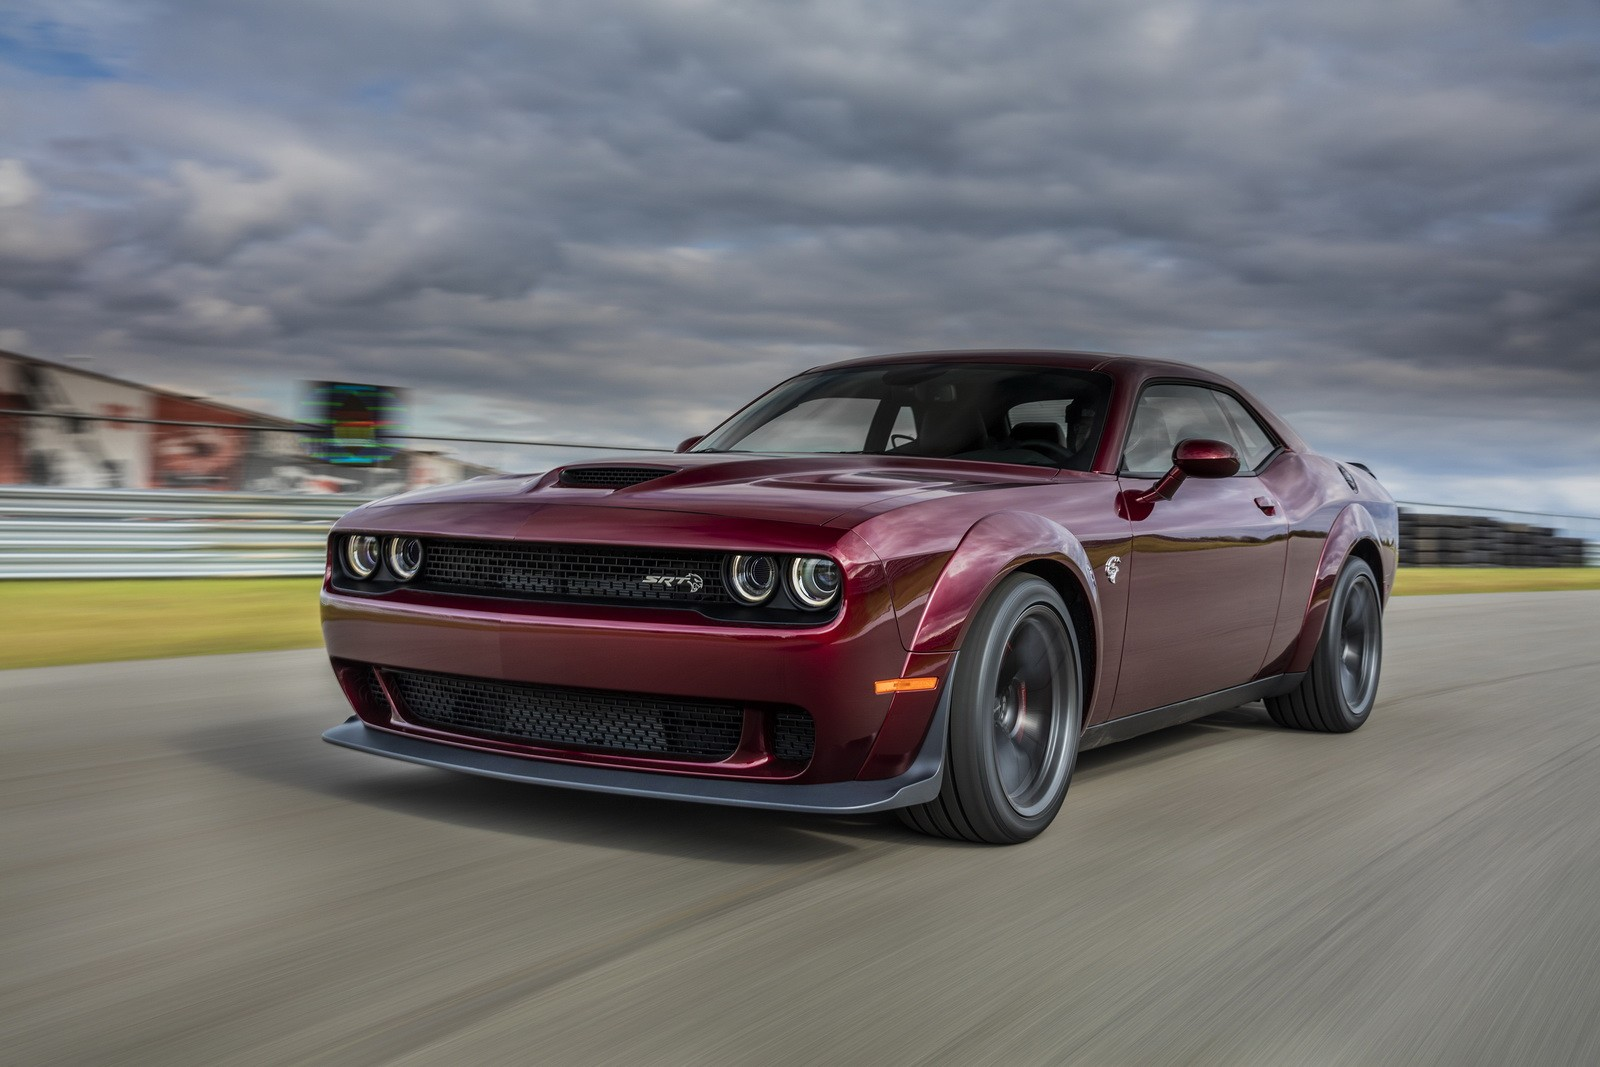 2019 dodge challenger srt hellcat previewed ahead of summer reveal autoevolution. Black Bedroom Furniture Sets. Home Design Ideas